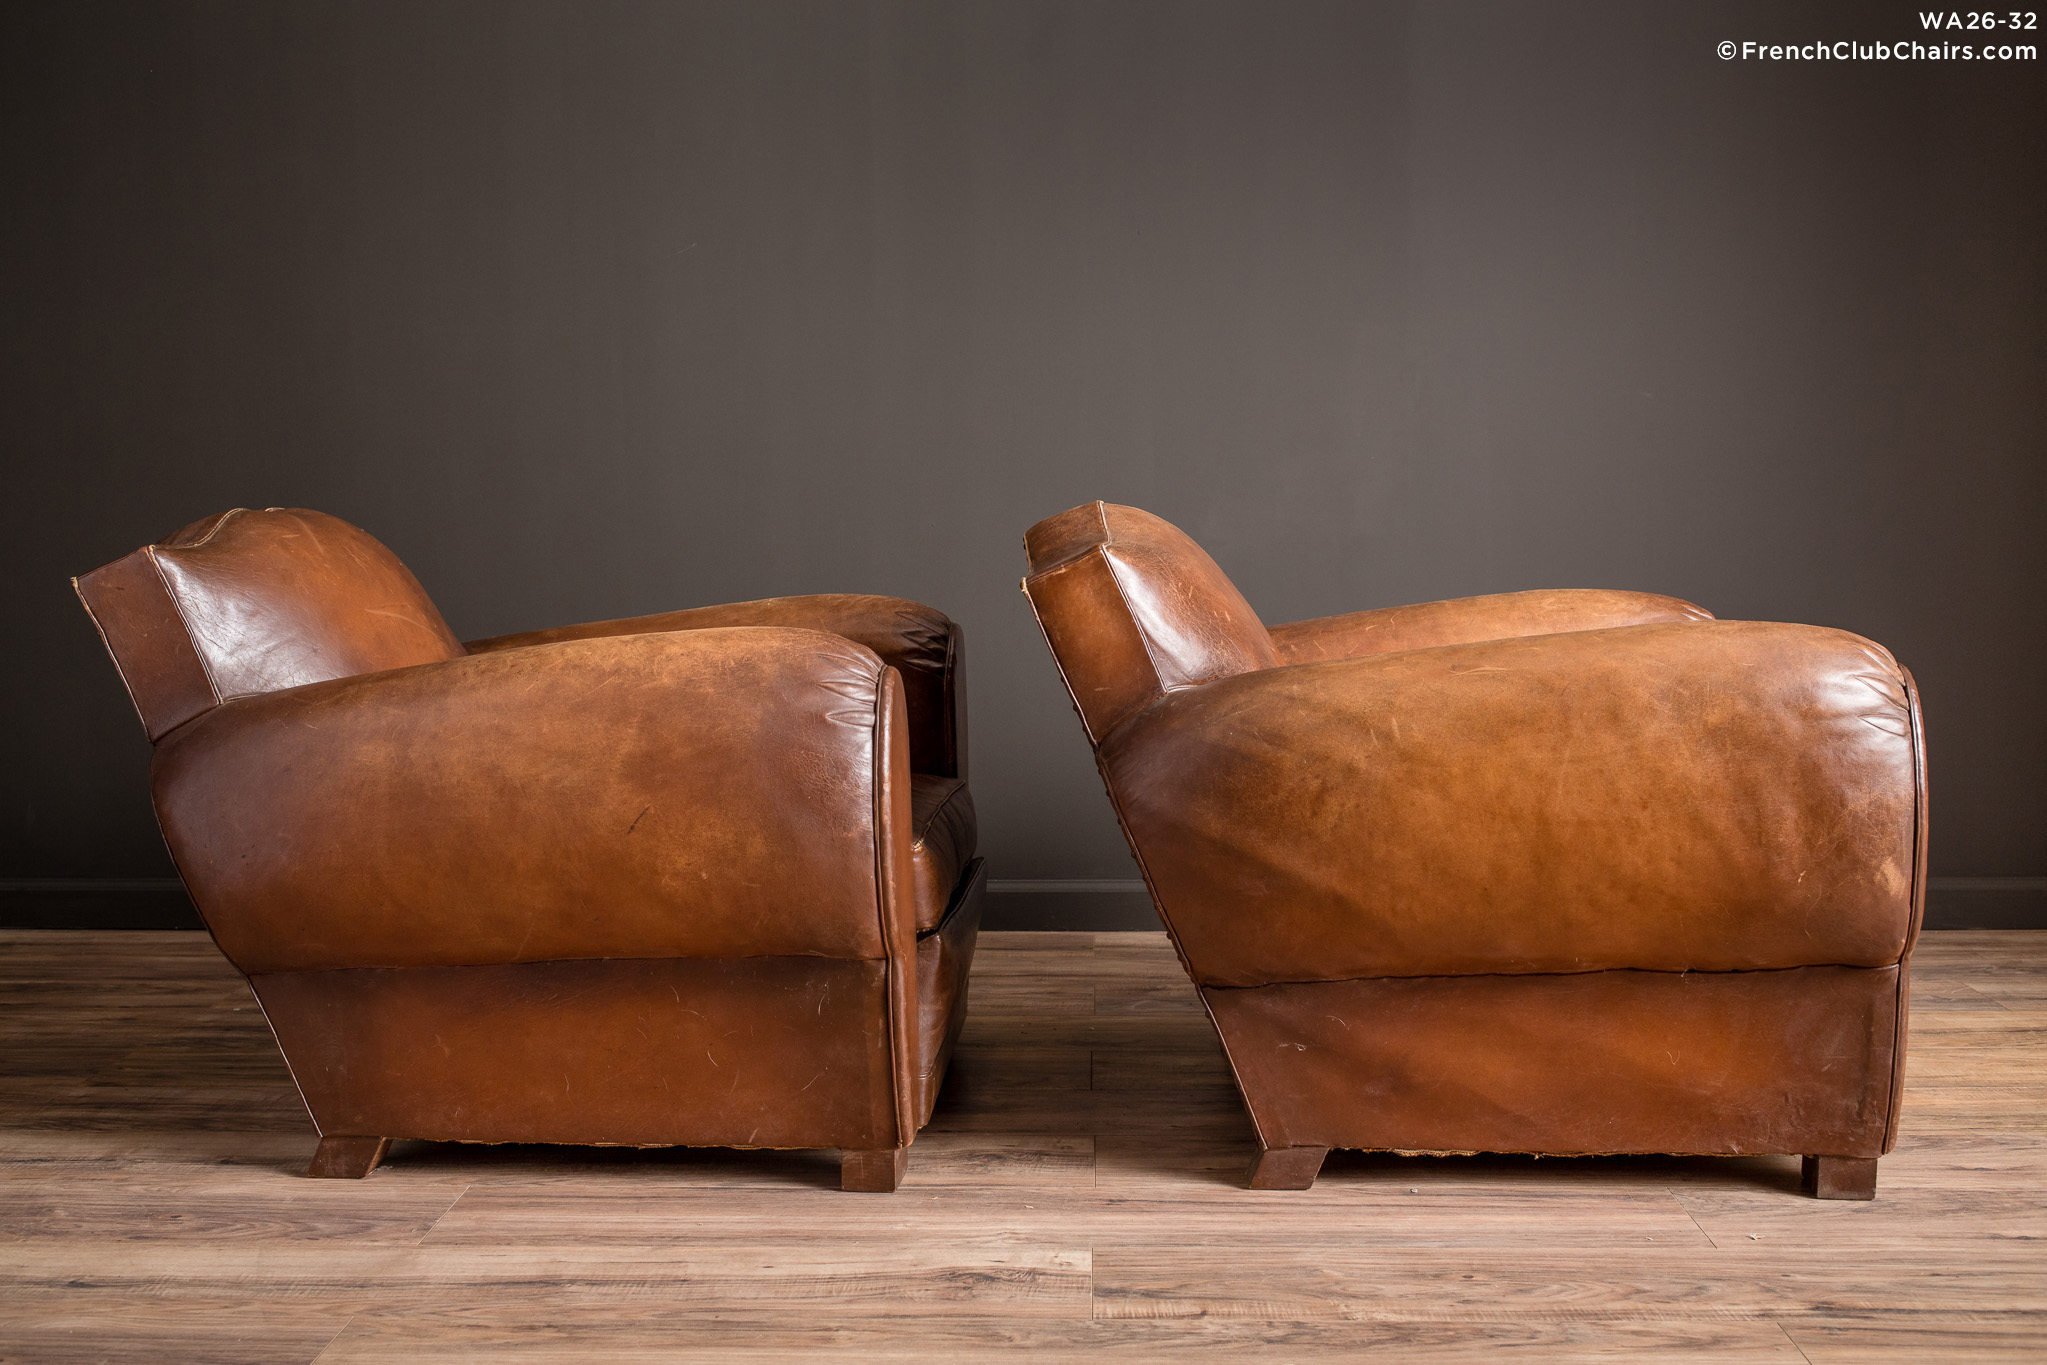 WA_26-32_Royal_Mustache_Pair_R_3RT-v01-williams-antiks-leather-french-club-chair-wa_fcccom